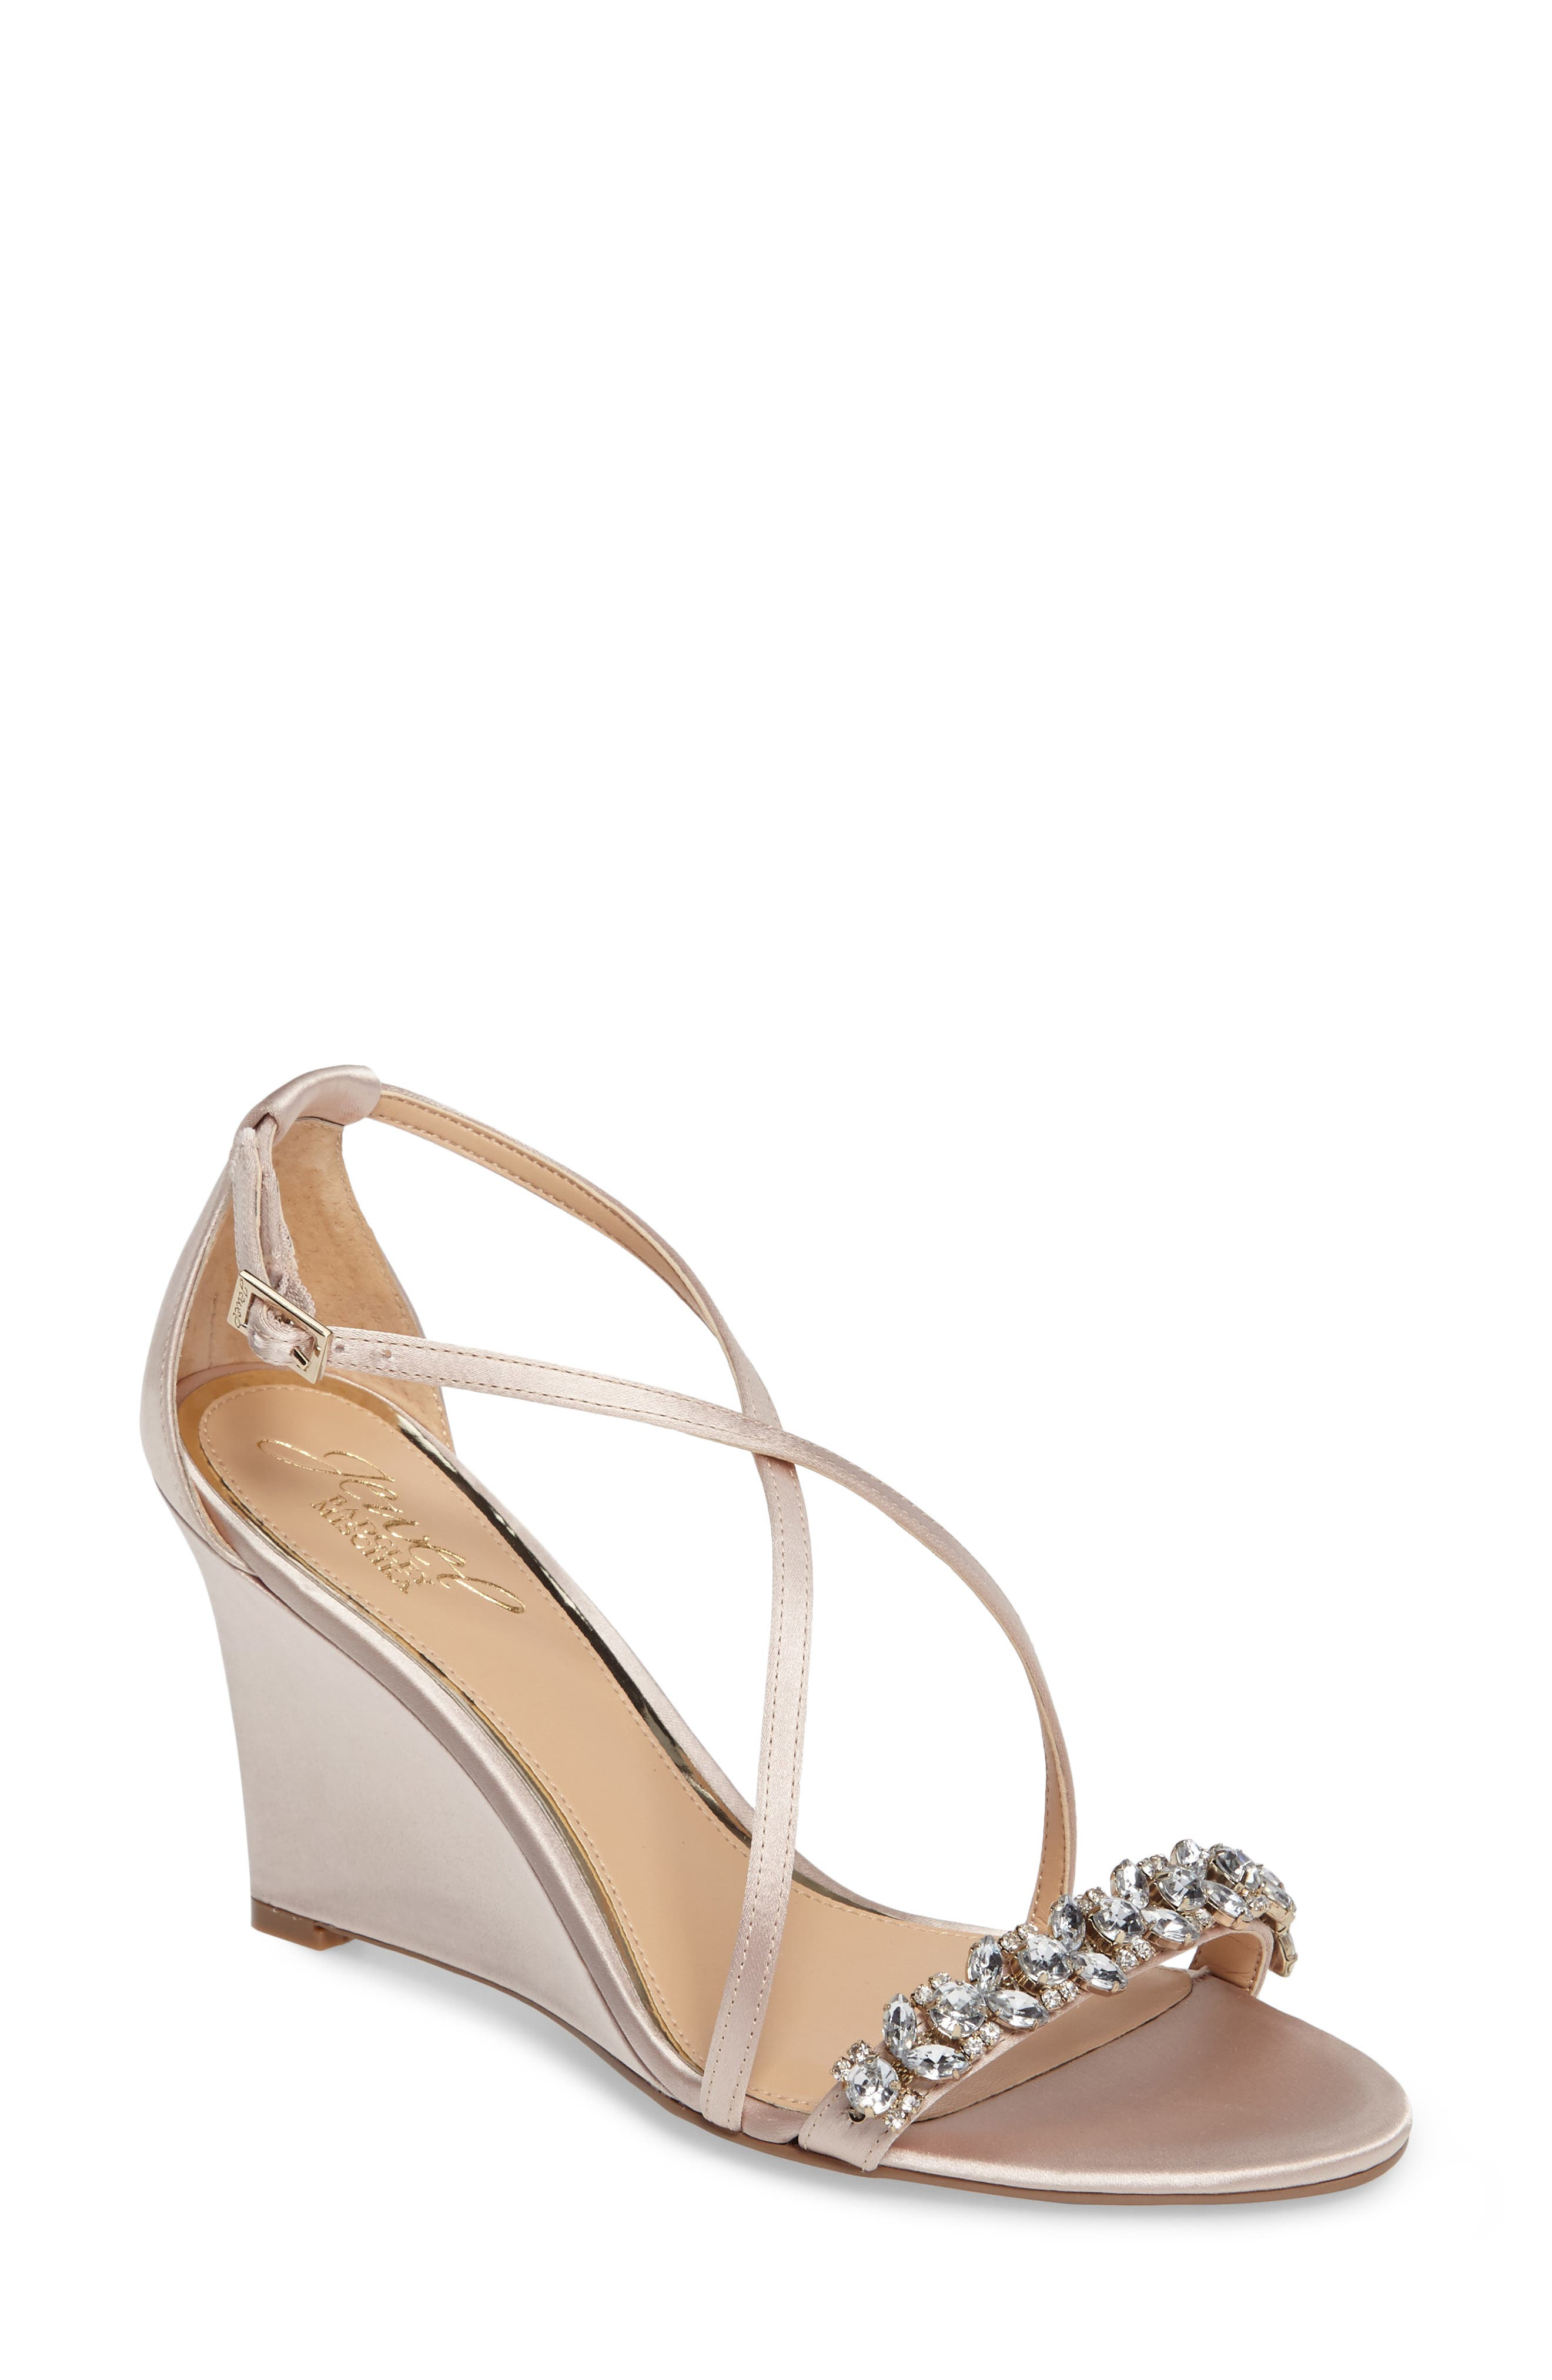 Embellished Strappy Wedge Sandal,                         Main,                         color, Champagne Satin